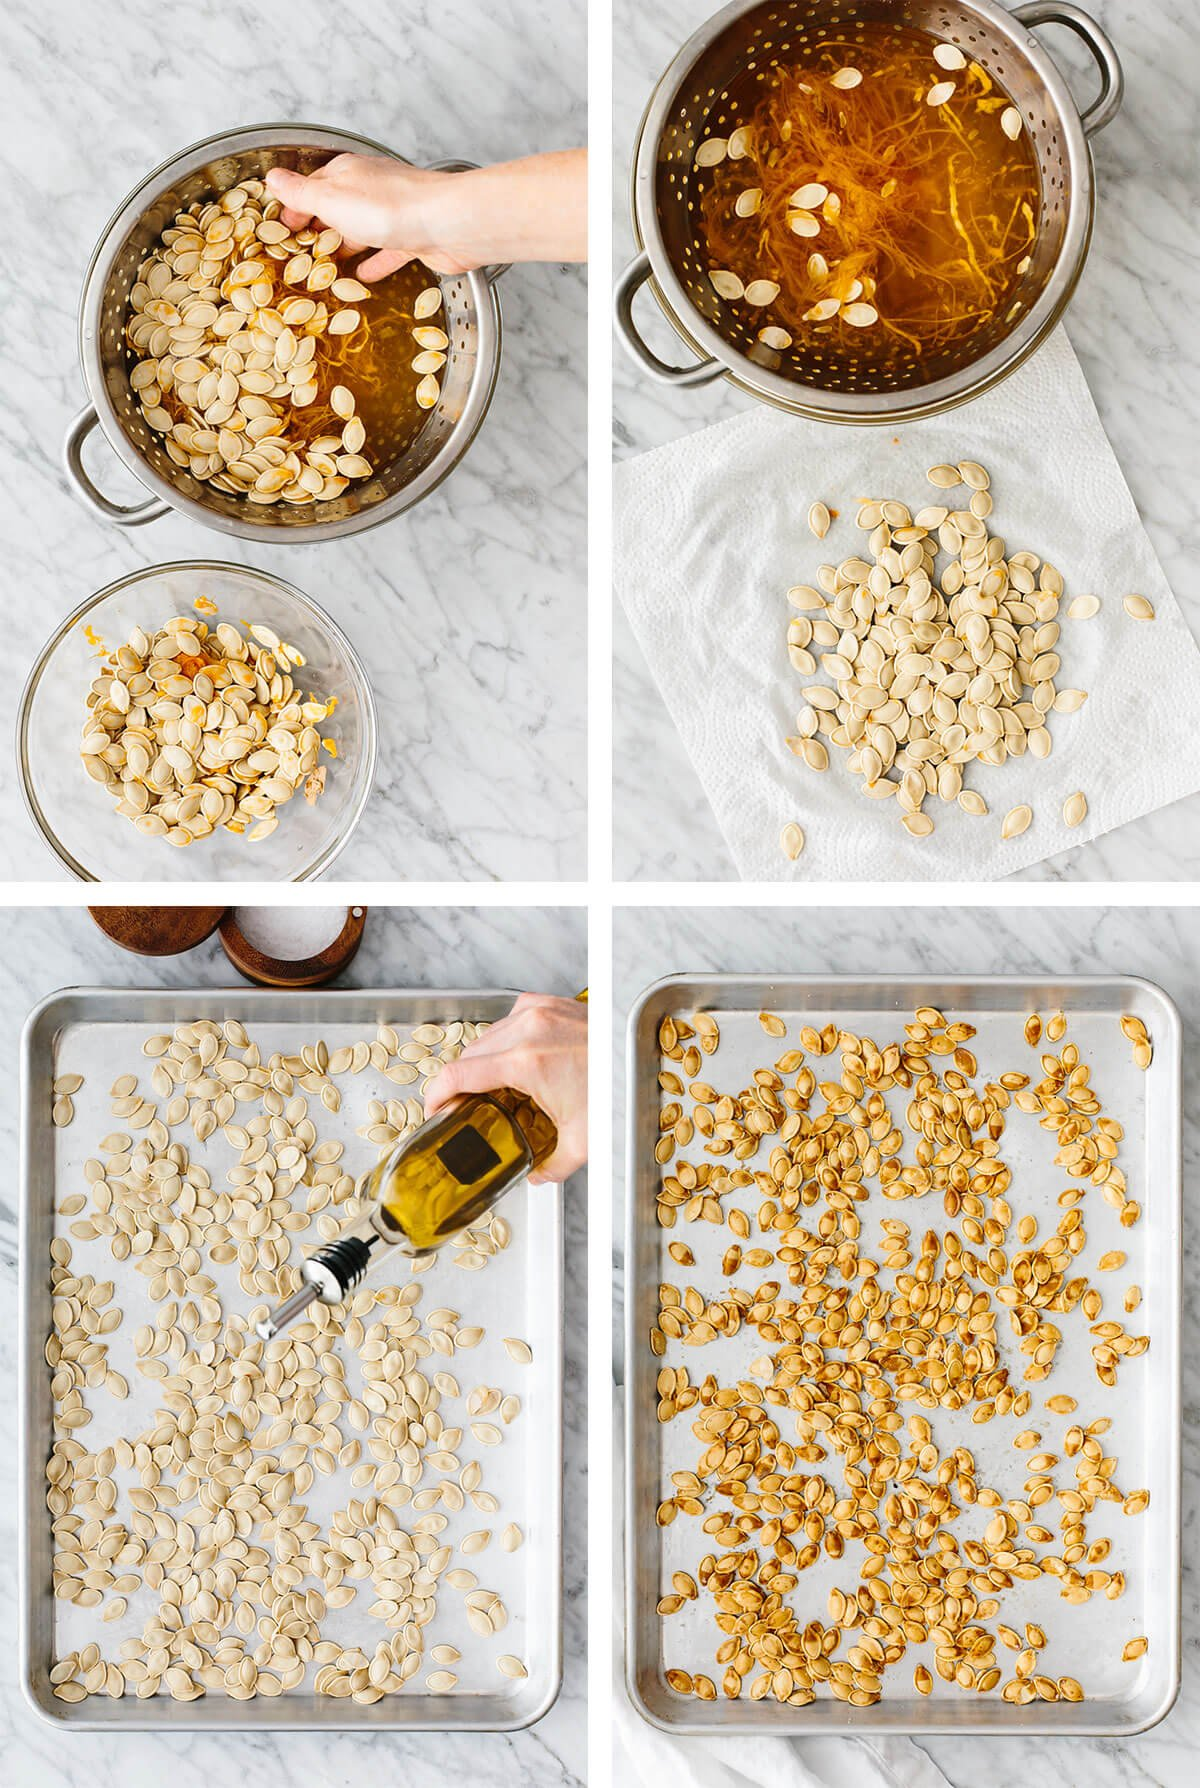 Process of cleaning and roasting pumpkin seeds on a baking sheet.